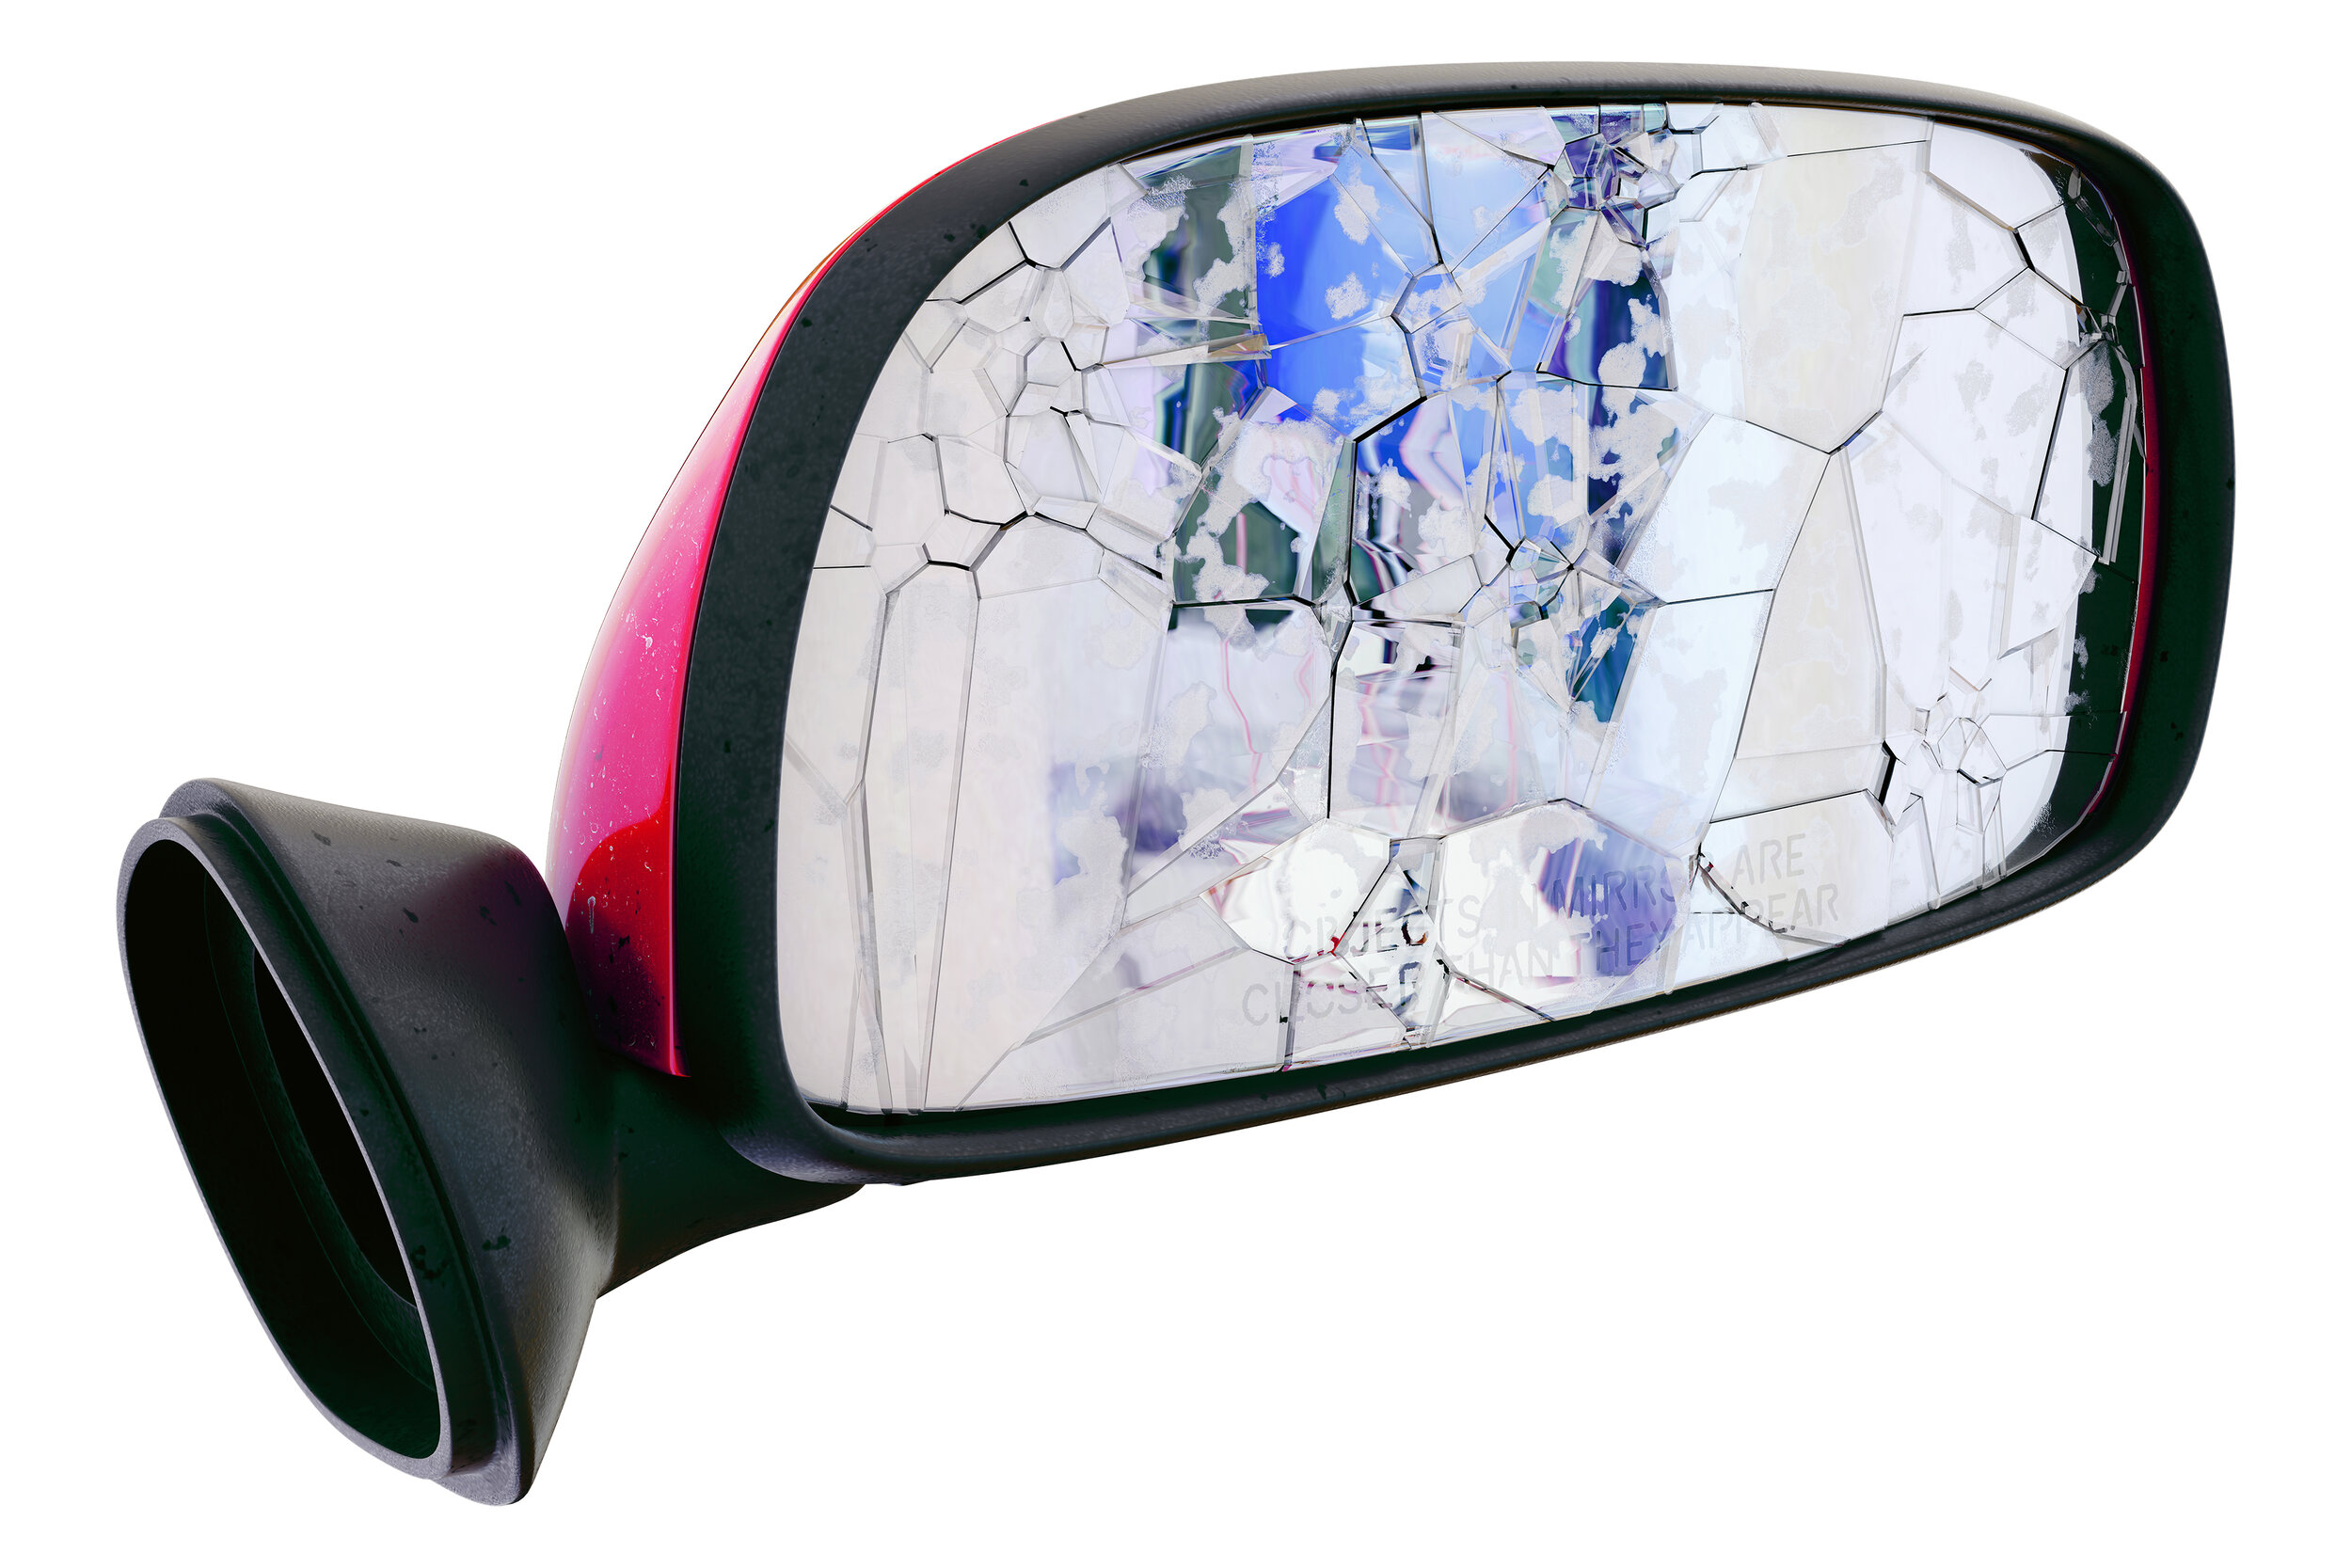 Asha Schechter,  Prius mirror from Baby Barcelona , 2019 Inkjet print on adhesive vinyl 150 x 104 centimeters, 59 x 41 inches